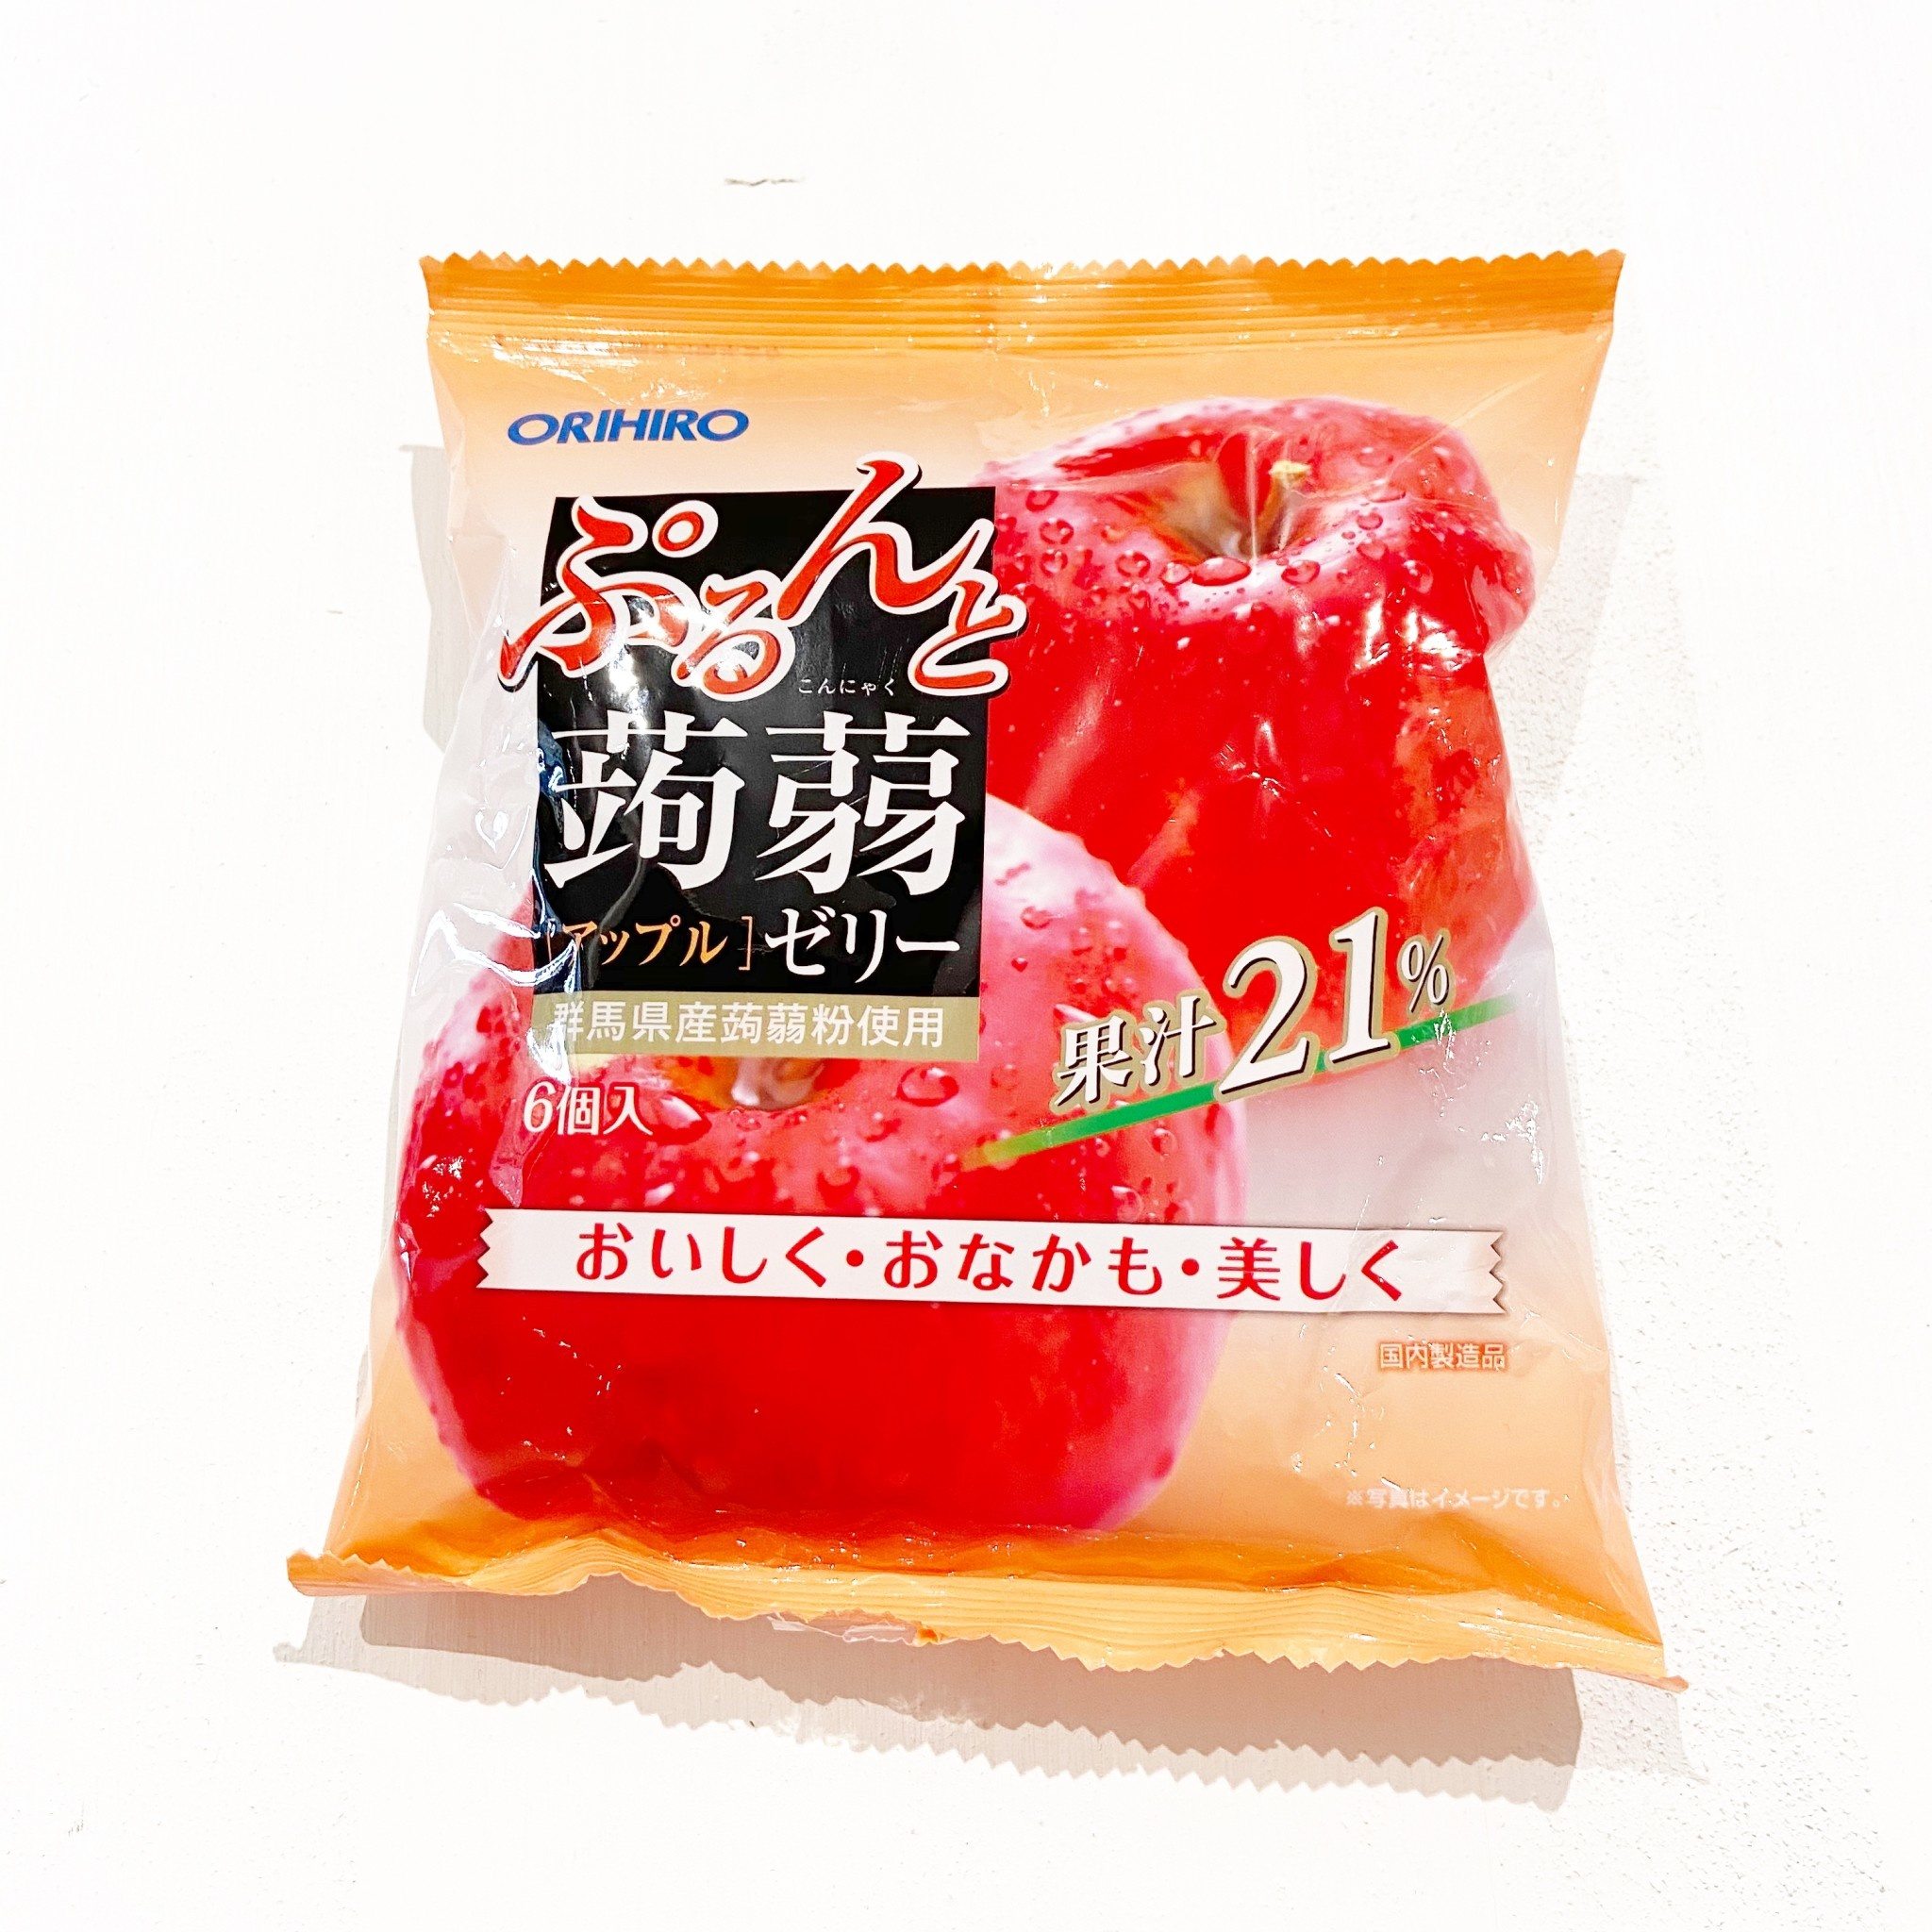 ORIHIRO Konjac Jelly Apple Flavor